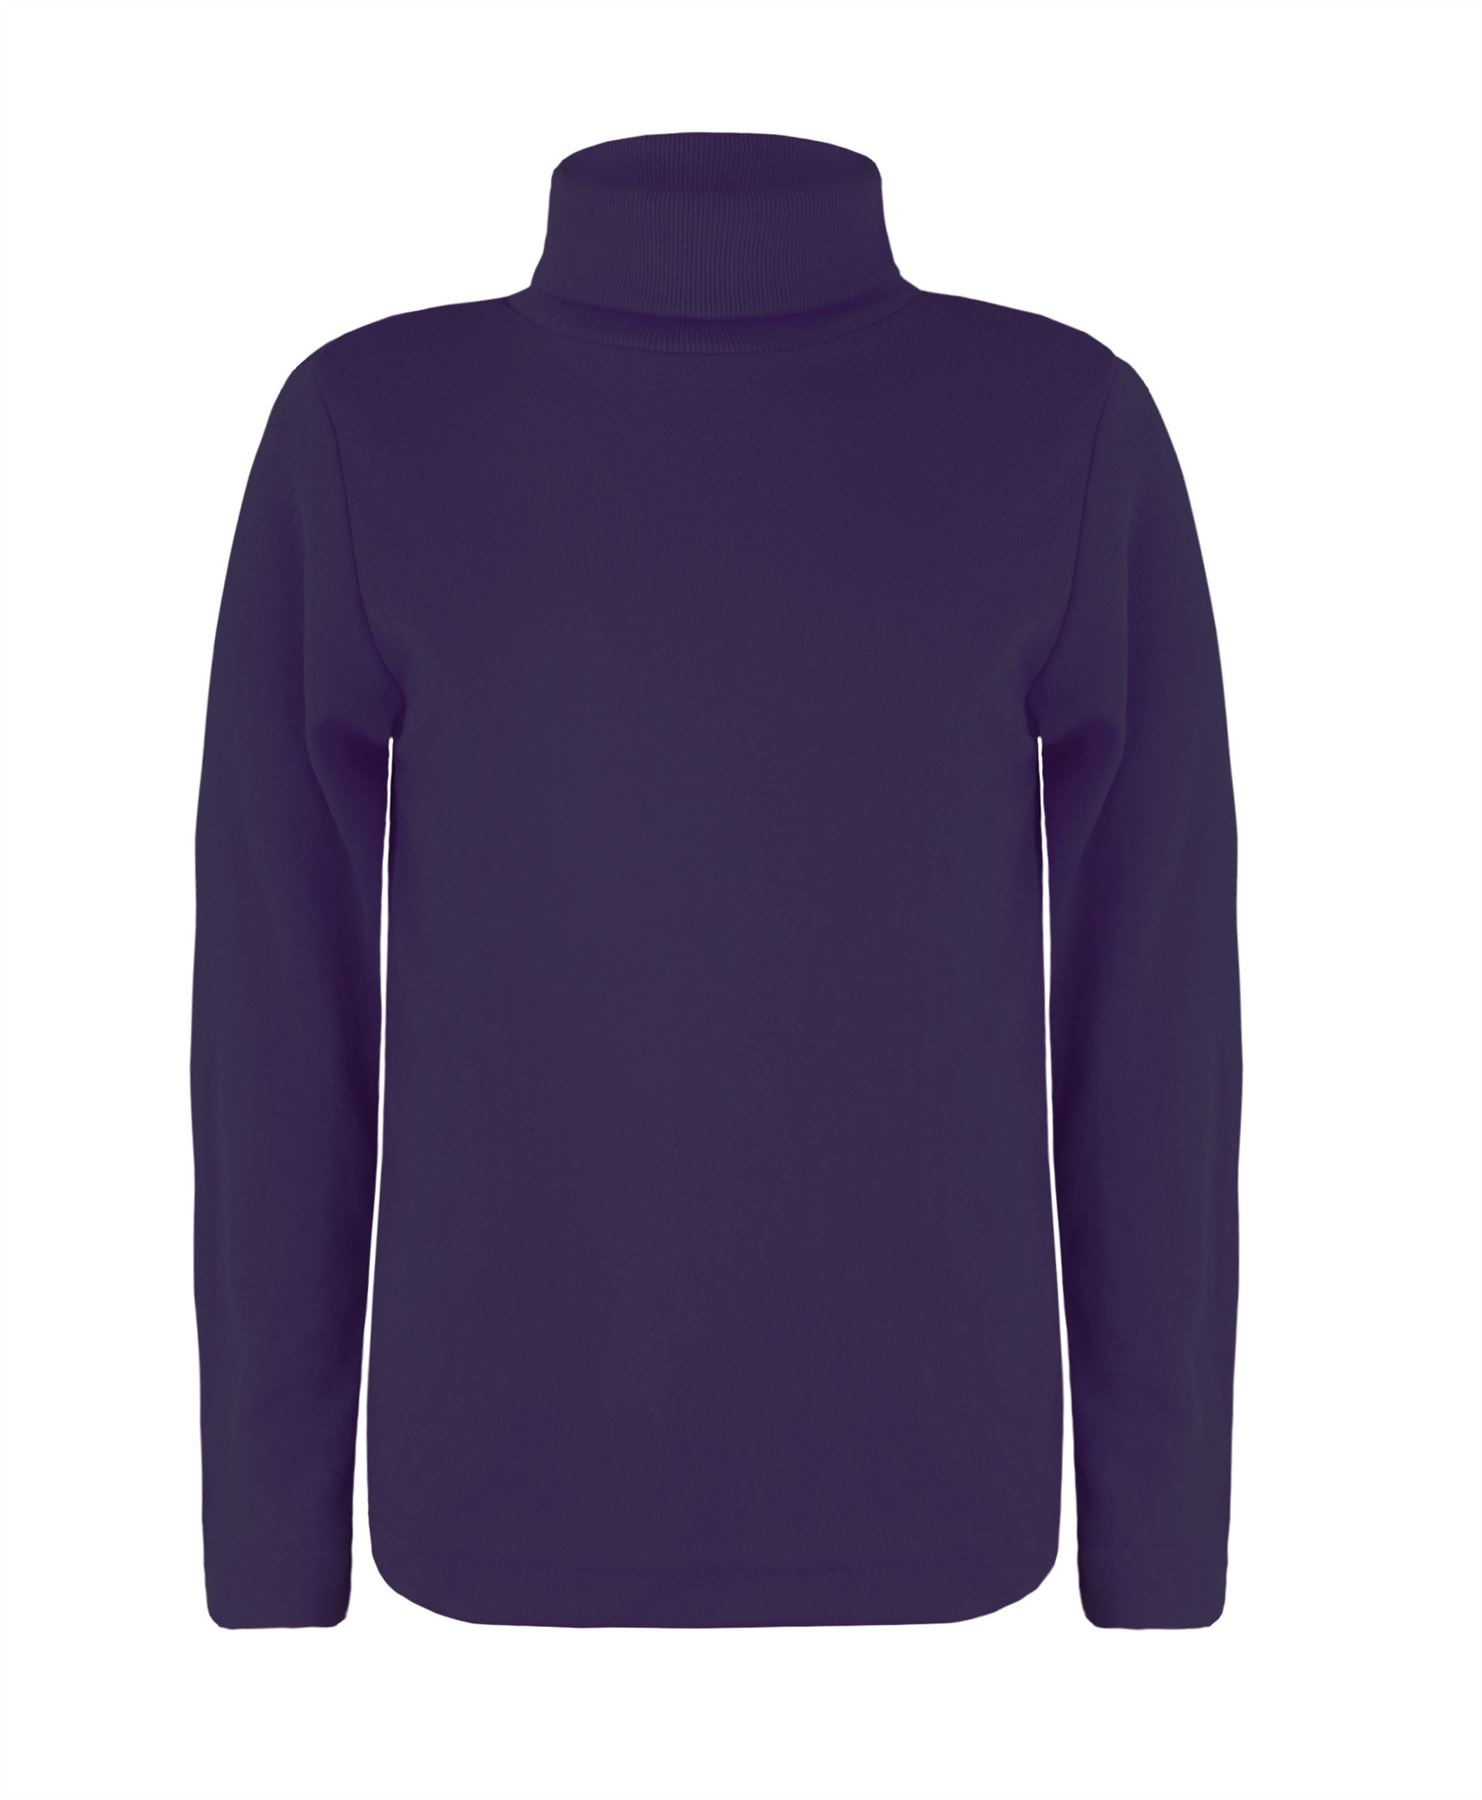 Kids long sleeve plain turtleneck basic jersey polo top for Long sleeved polo shirts for boys